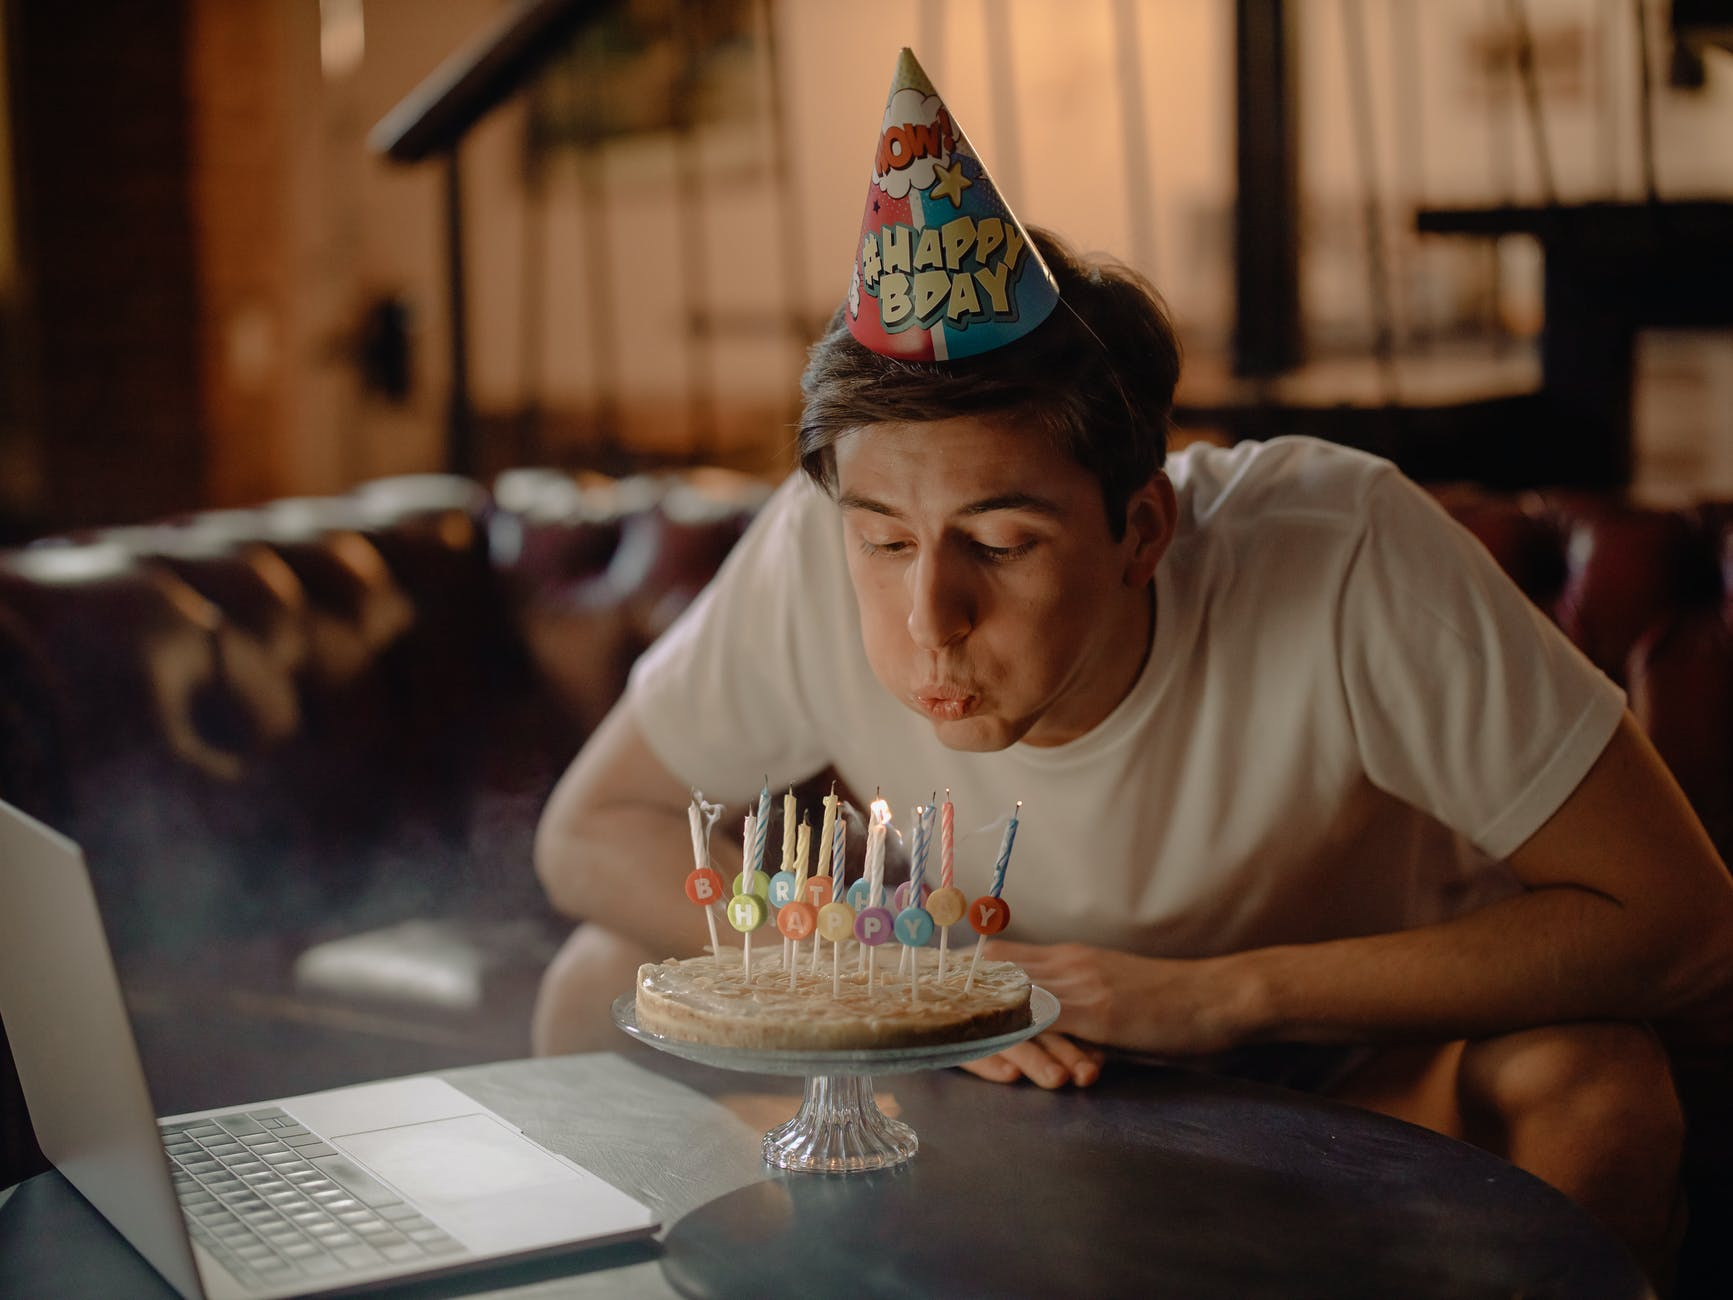 man in white crew neck t shirt sitting by the table with cake